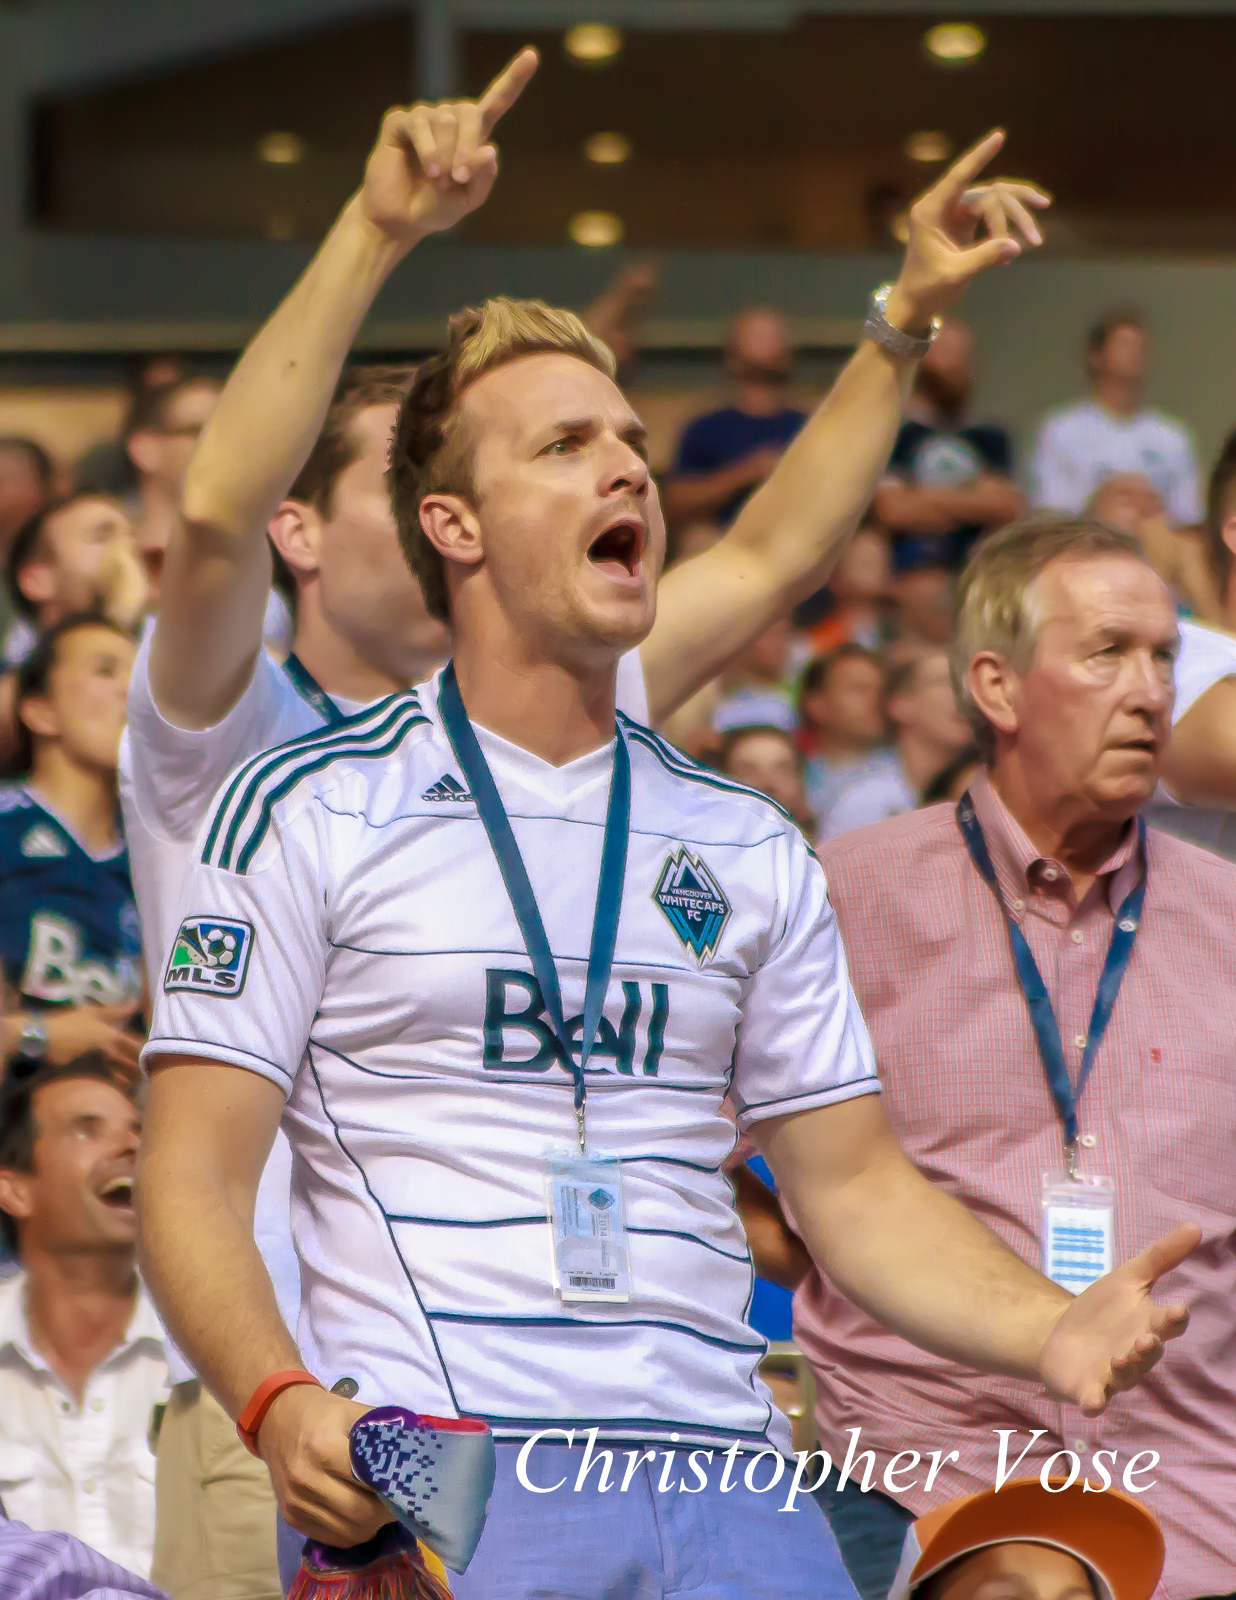 2014-07-12 Vancouver Whitecaps FC Supporter Reaction (No Morales Goal).jpg